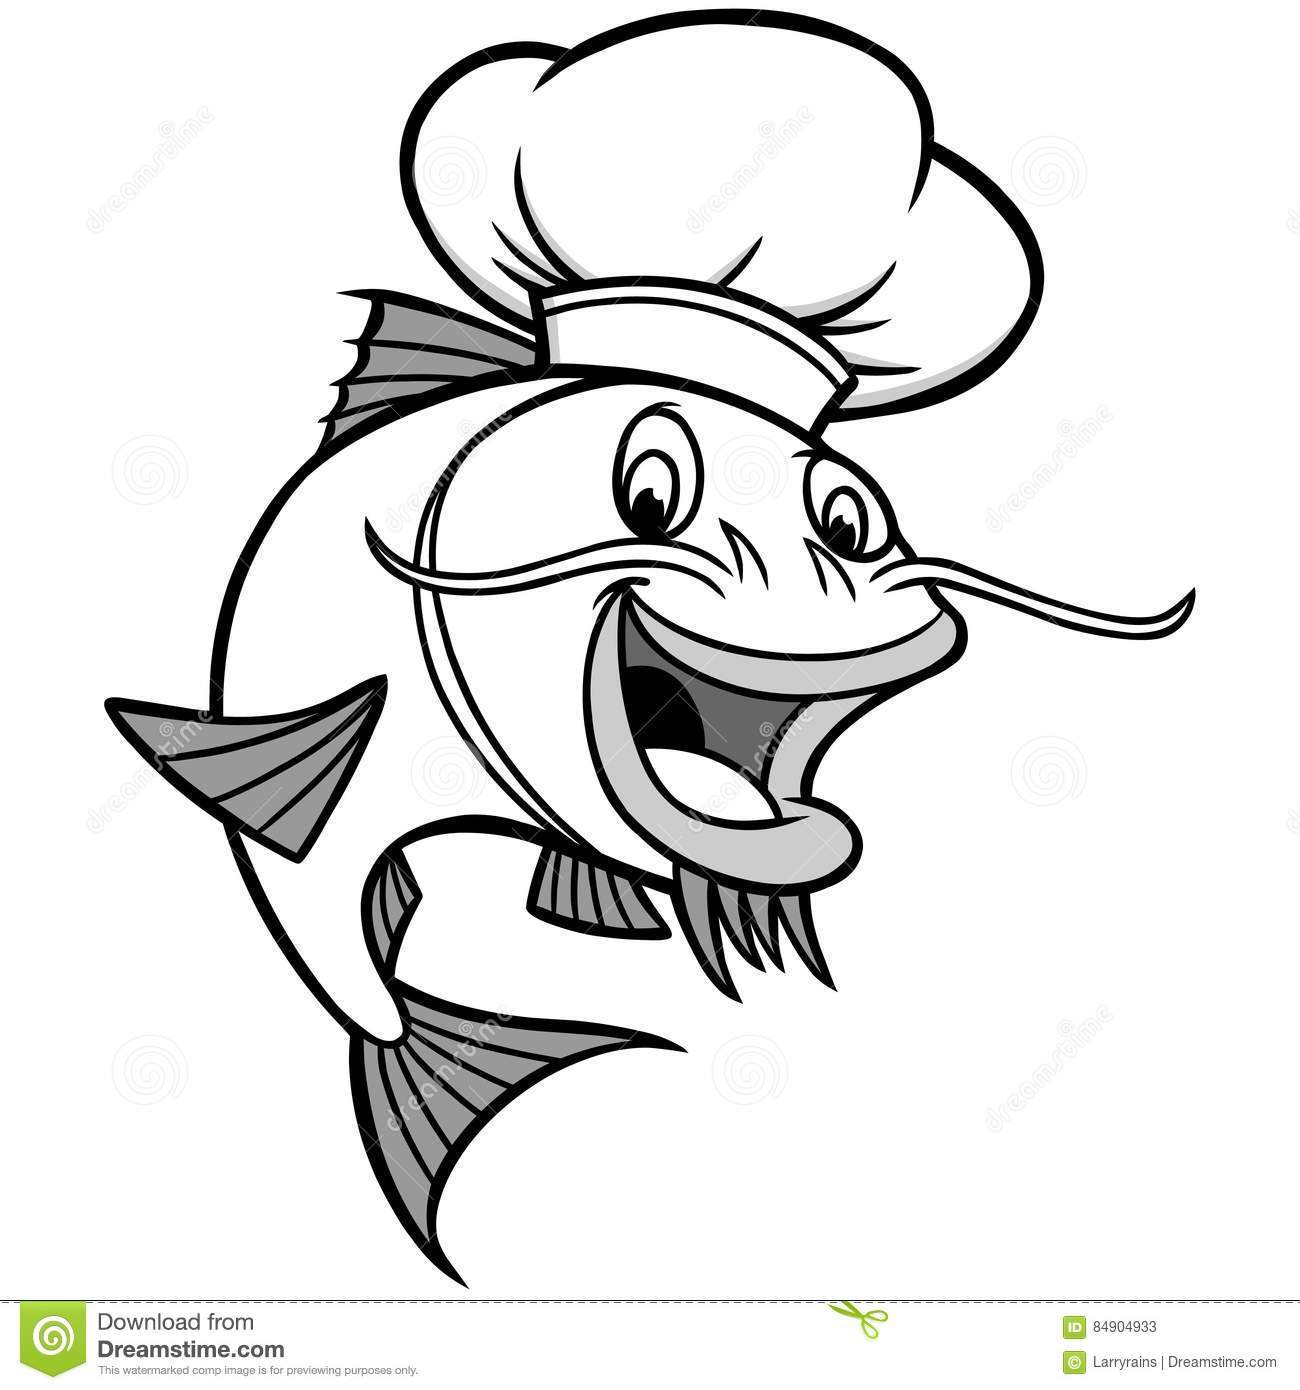 Catfish clipart black and white 9 » Clipart Portal.